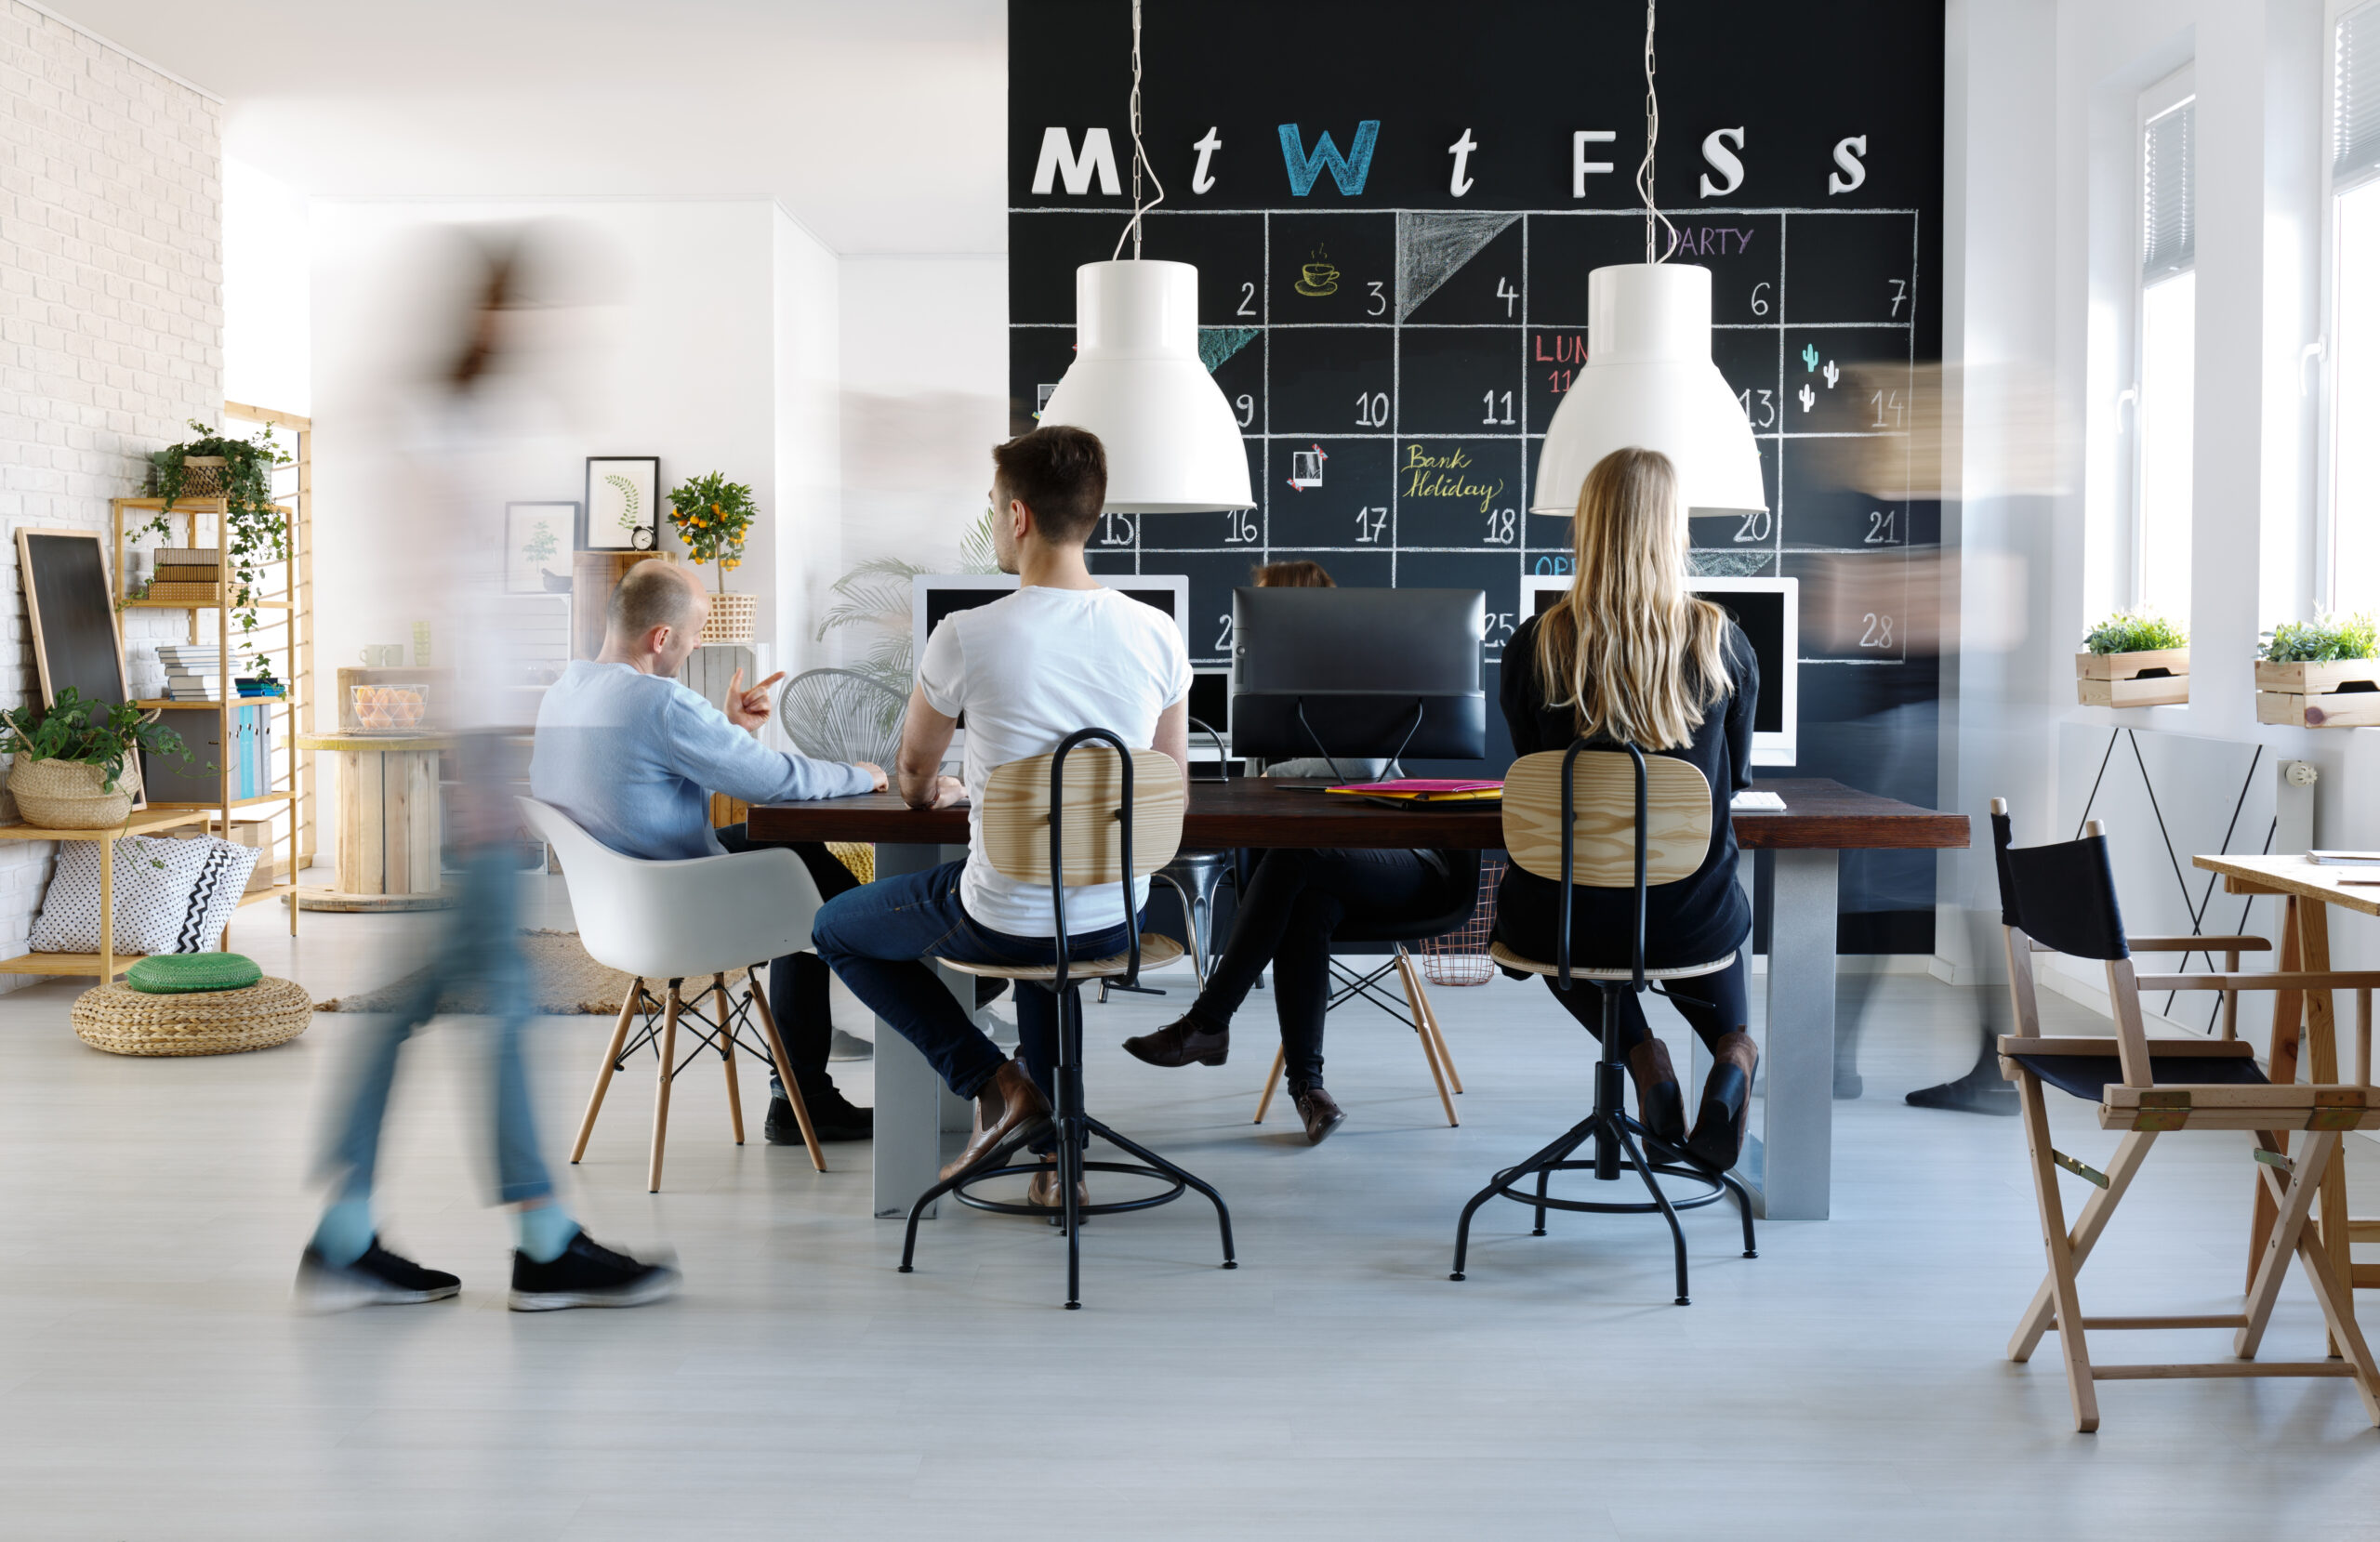 What Are the Five Features of a Successful Workplace?